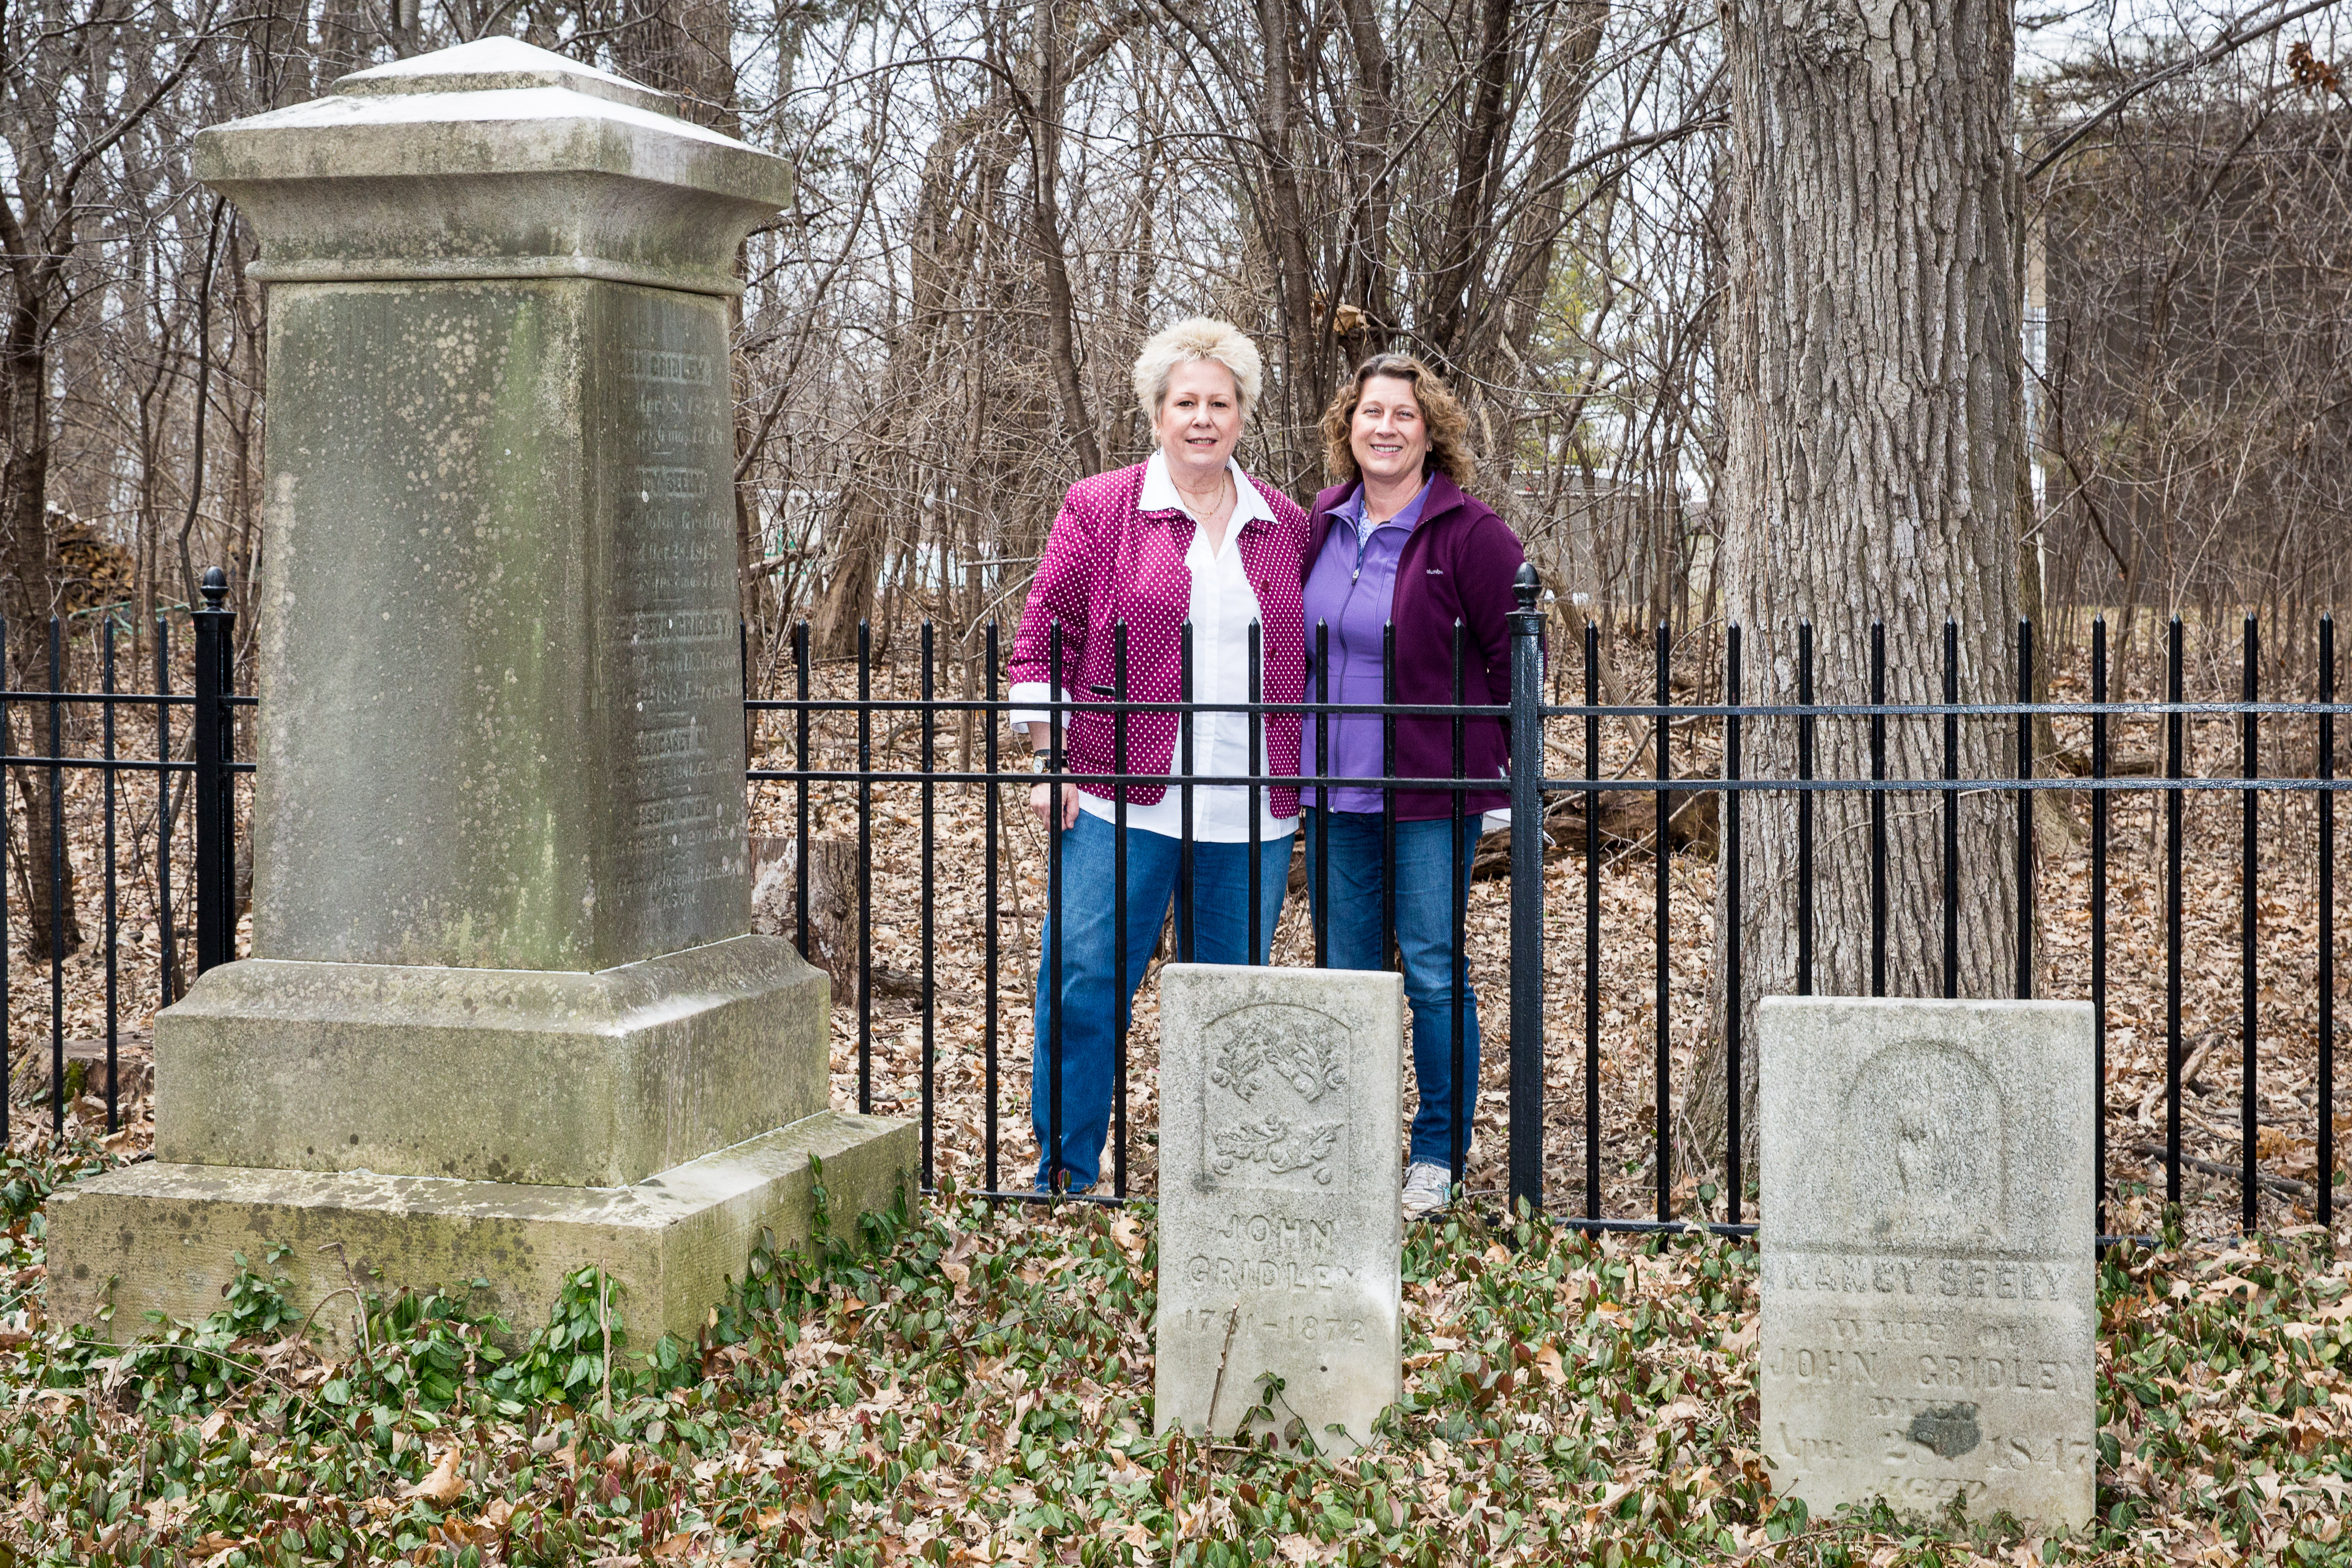 Sharon Gridley paid a recent visit to see the spot where her pioneer ancestors are buried.